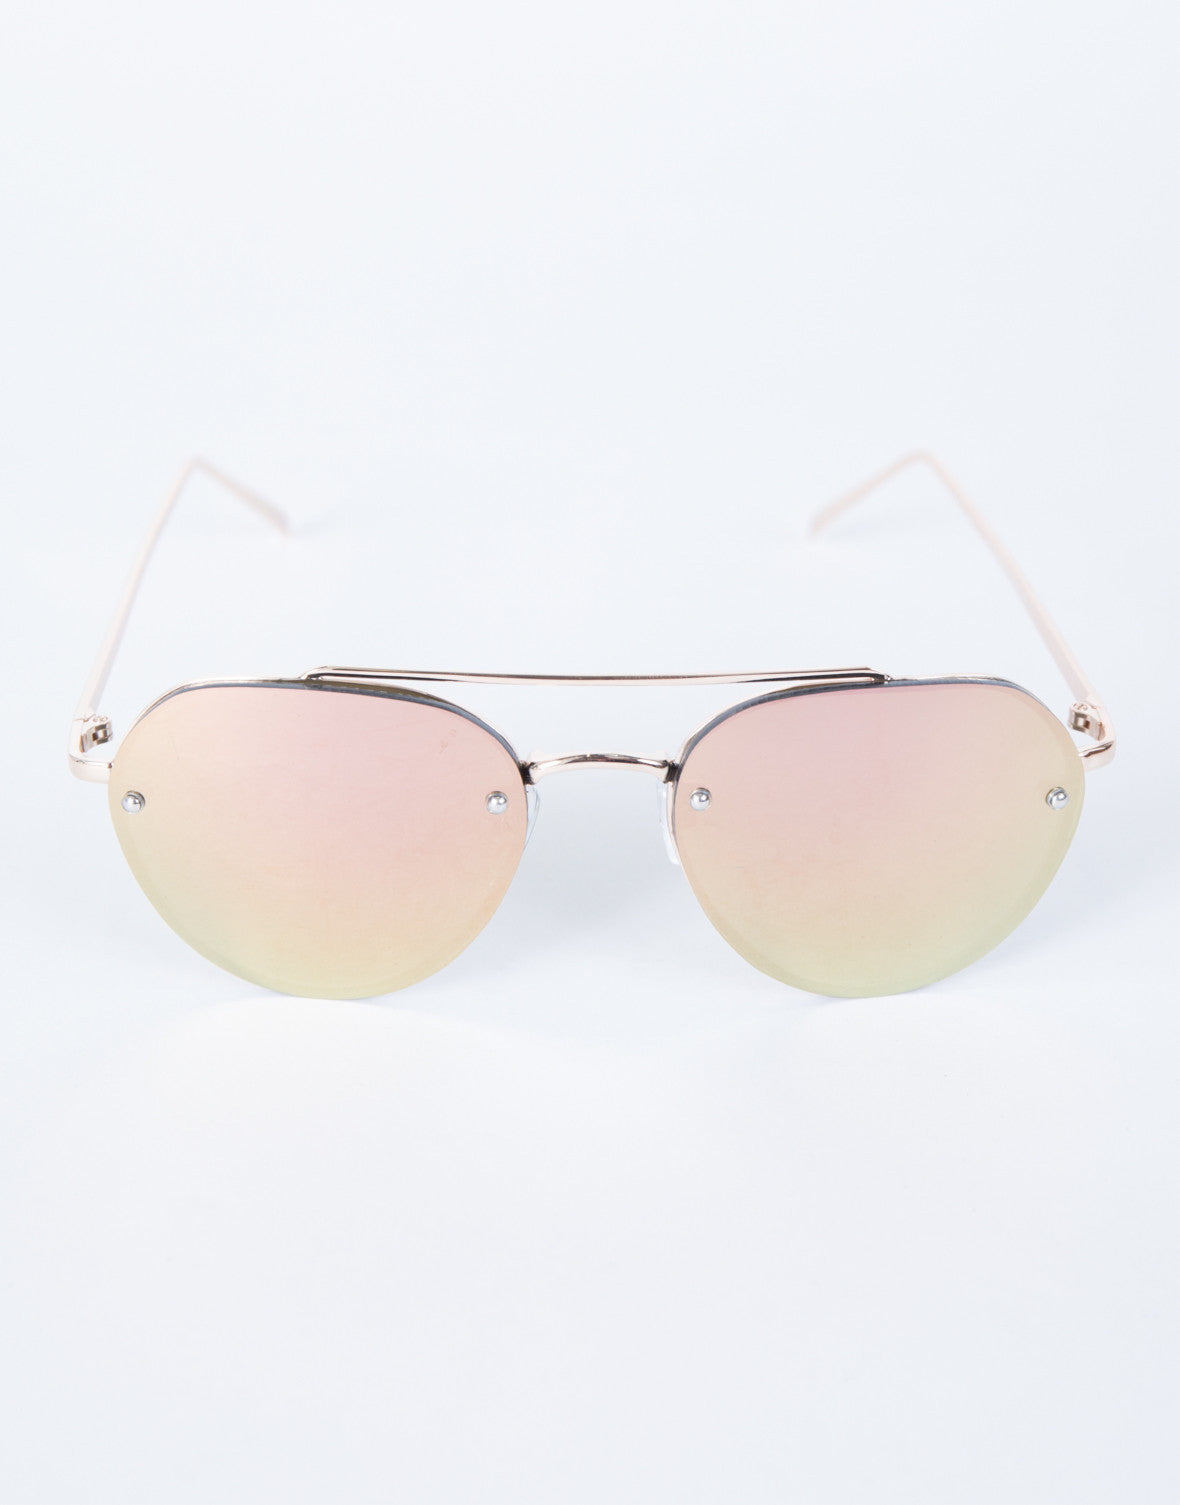 Rose Gold The Cleo Sunnies - Top View